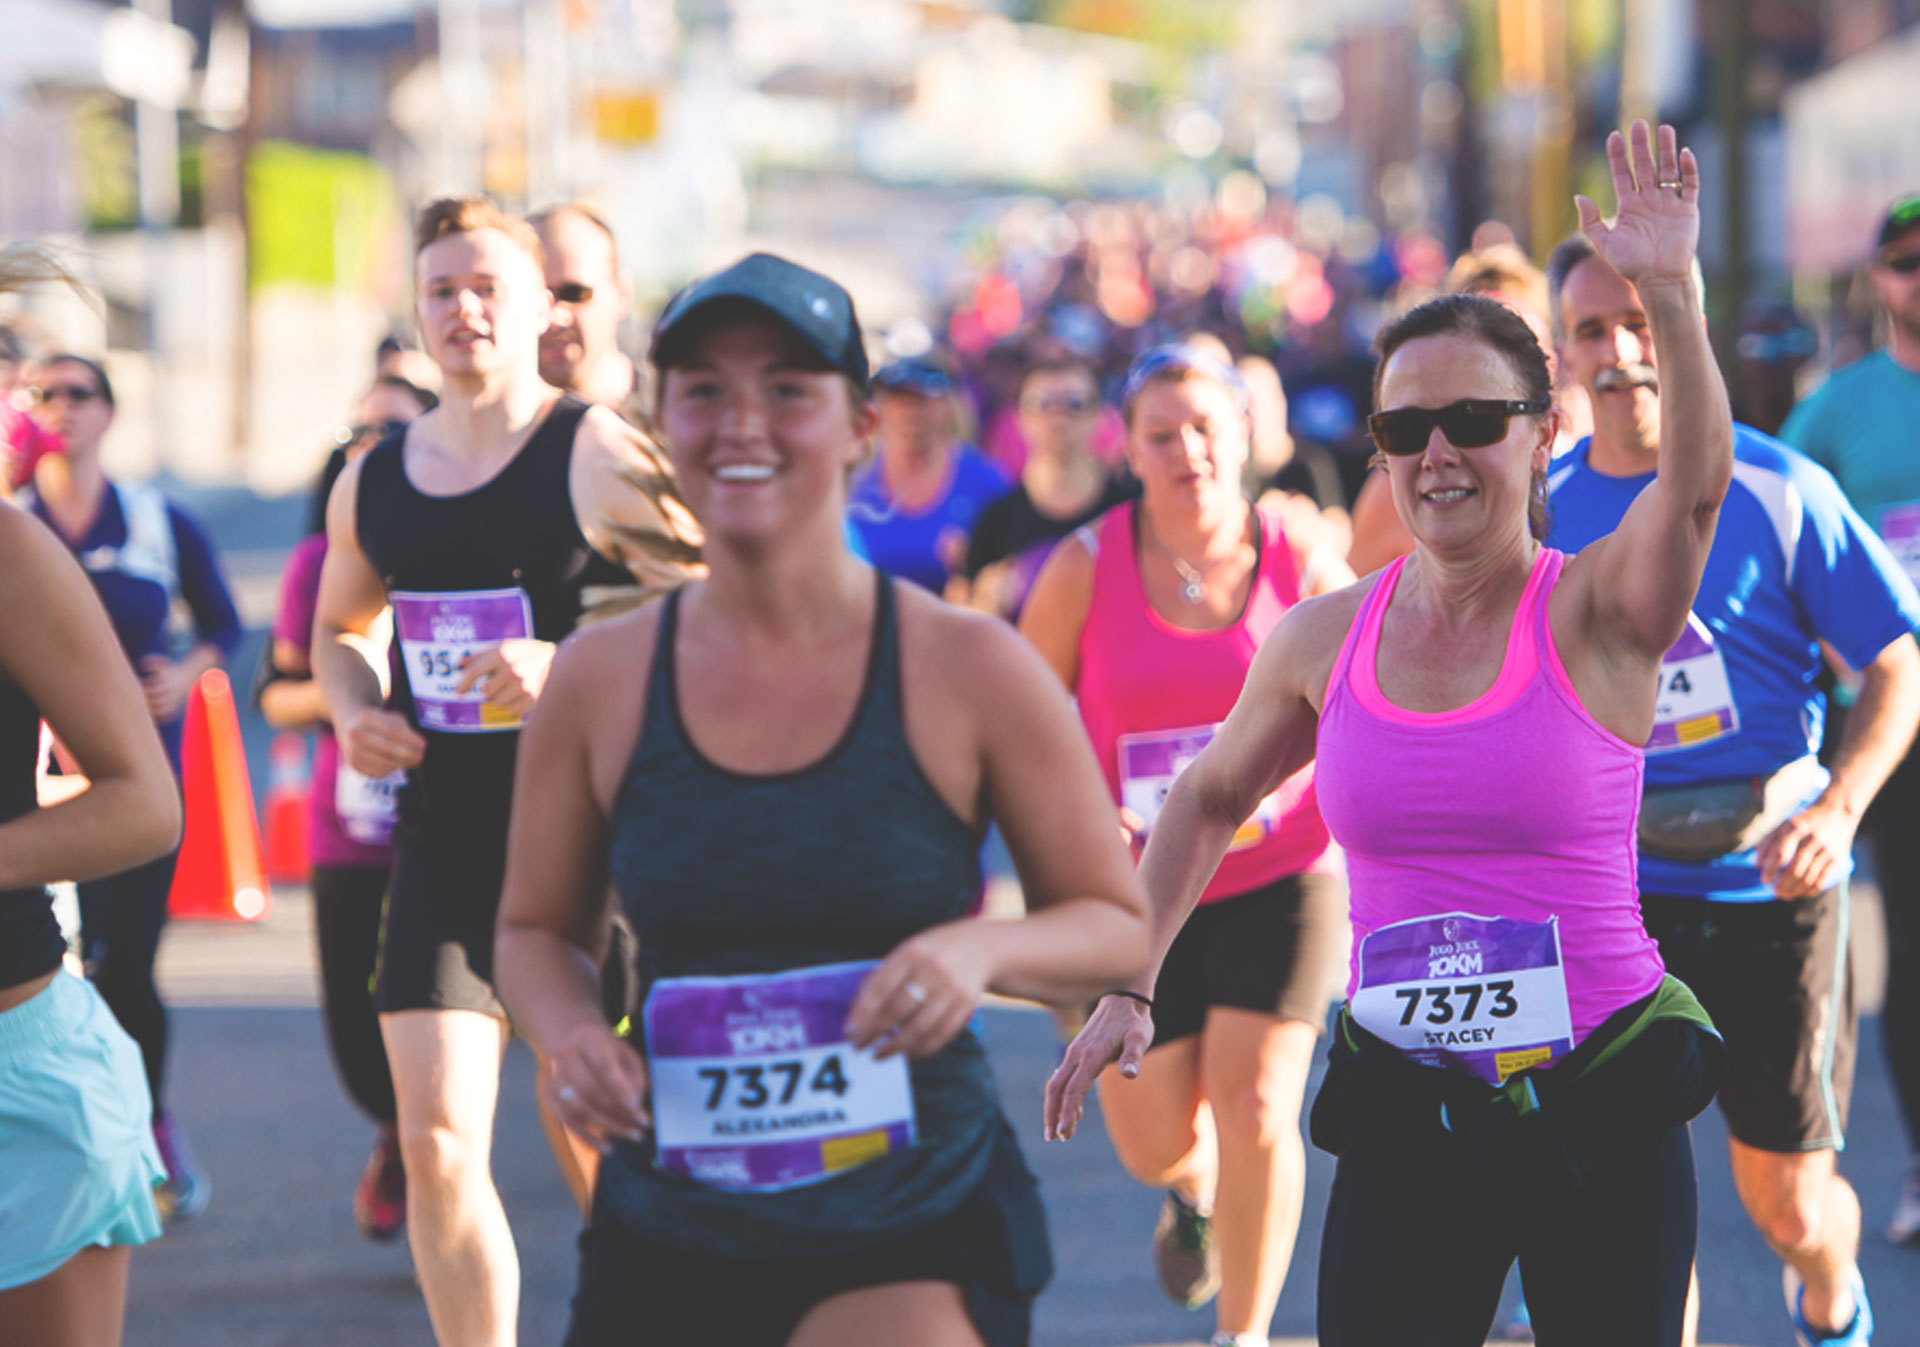 Be part of the energy at the Scotiabank Calgary Marathon.